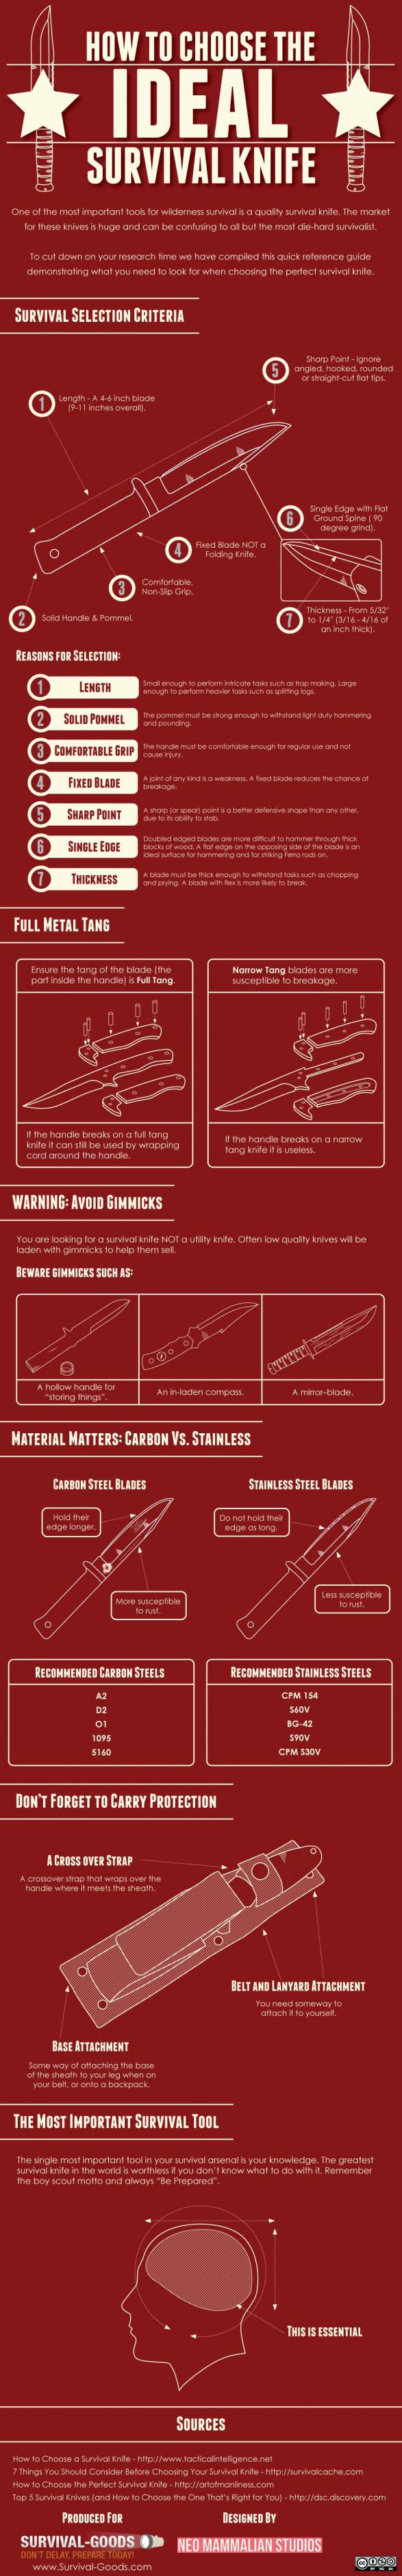 How to choose the ideal survival knife